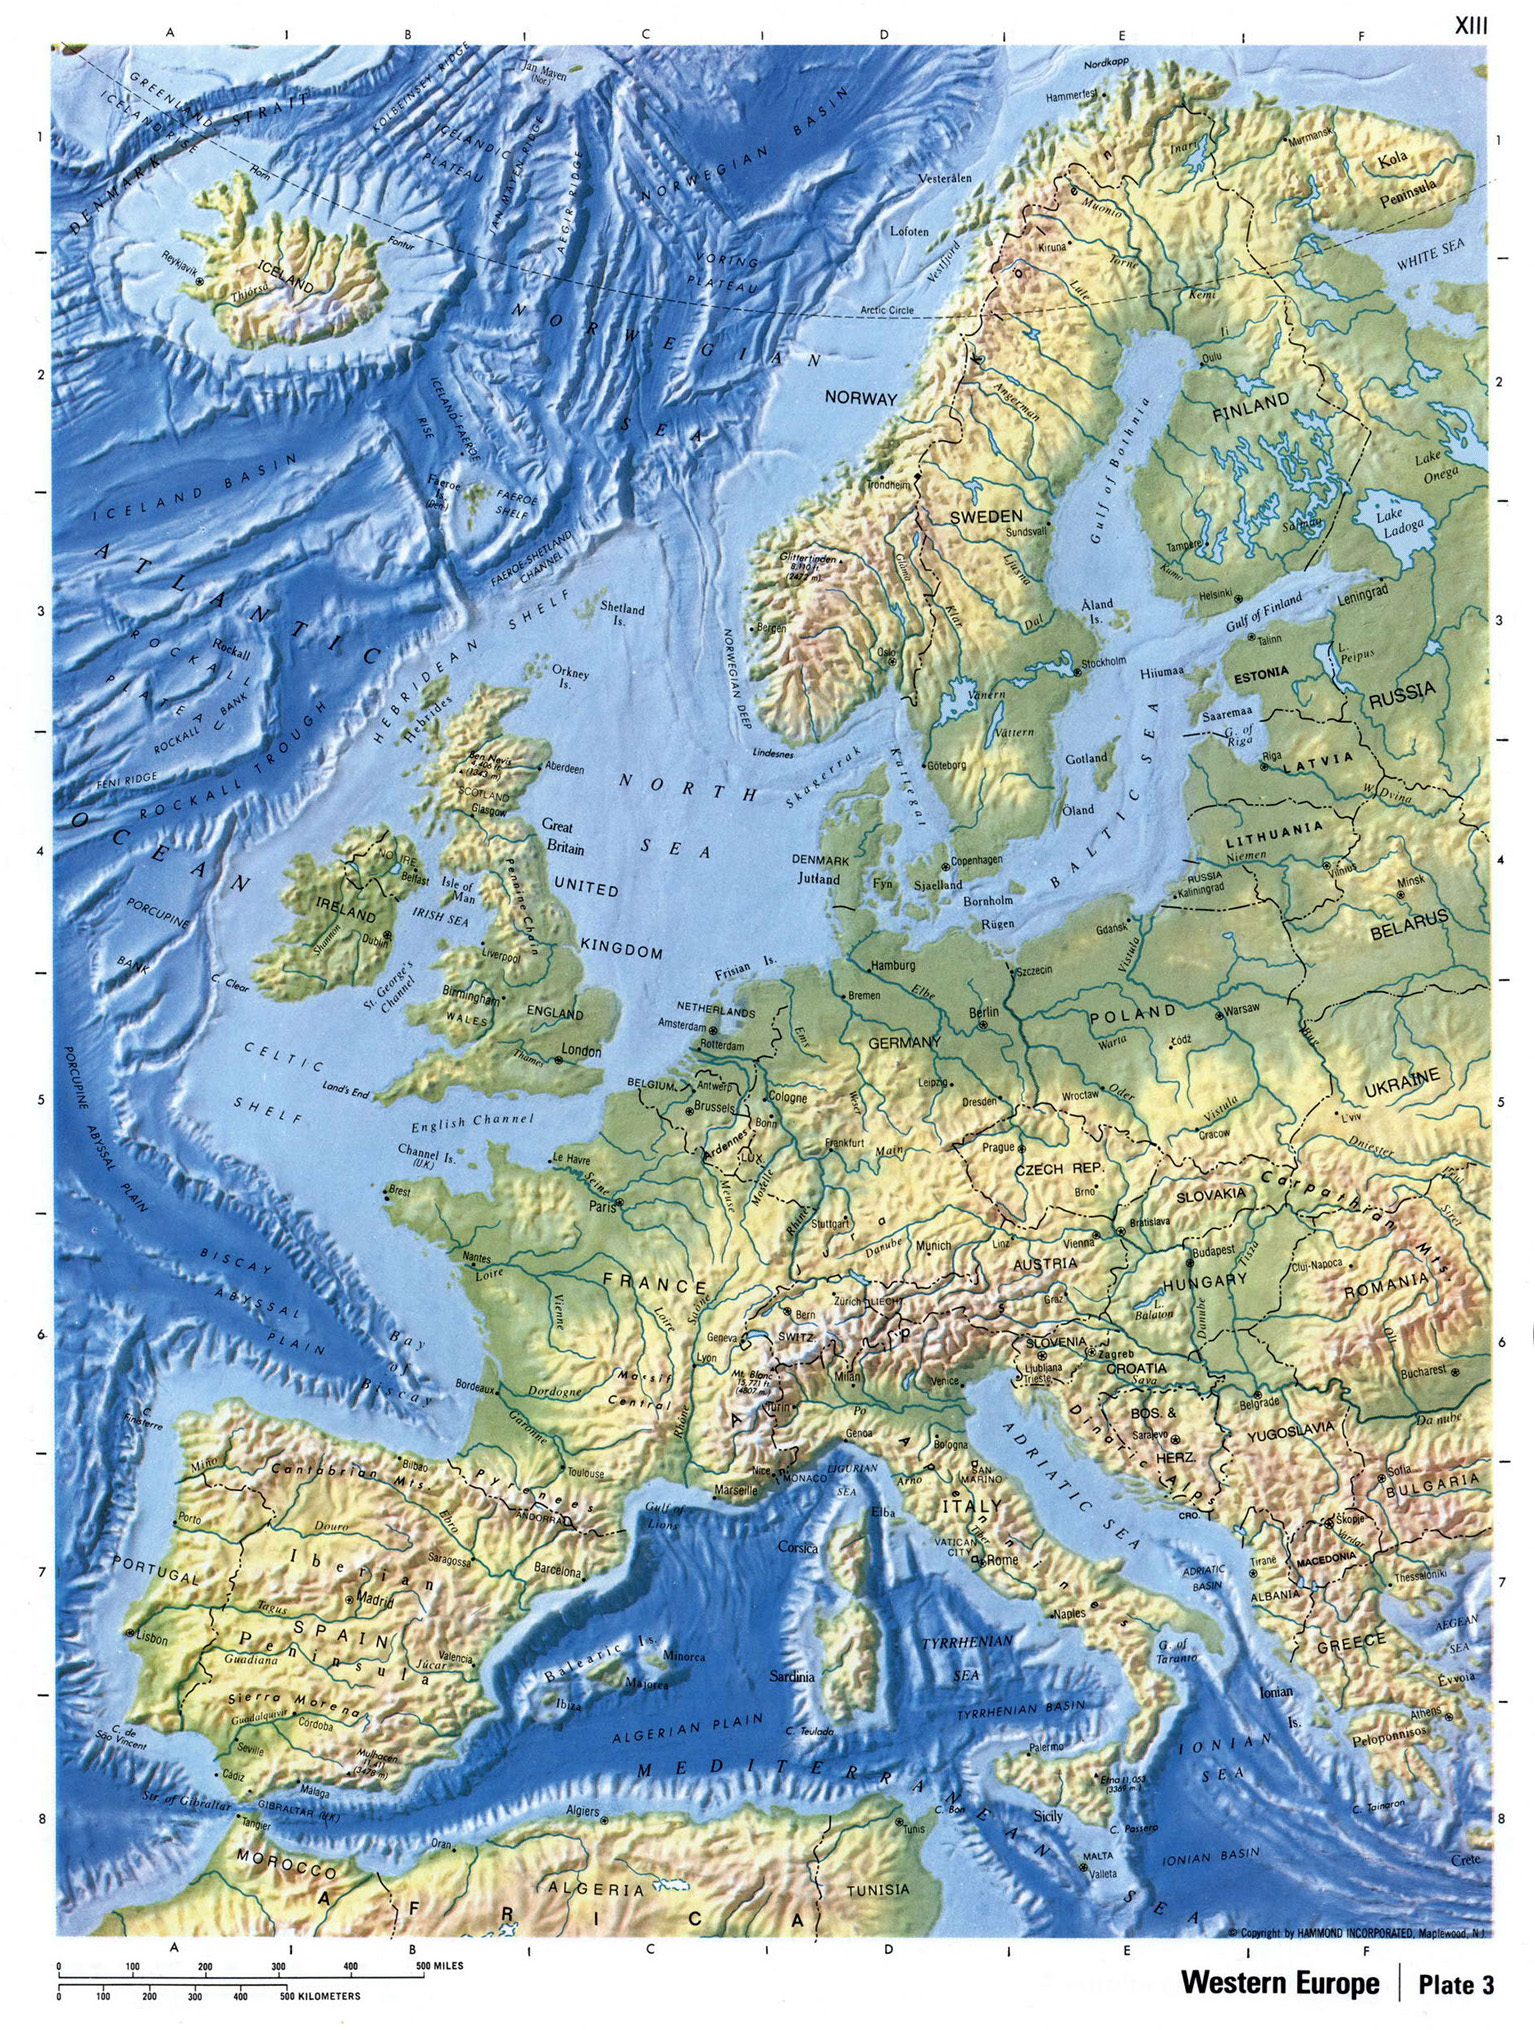 Detailed Relief Map Of Western Europe Europe Mapsland Maps - Map of western europe